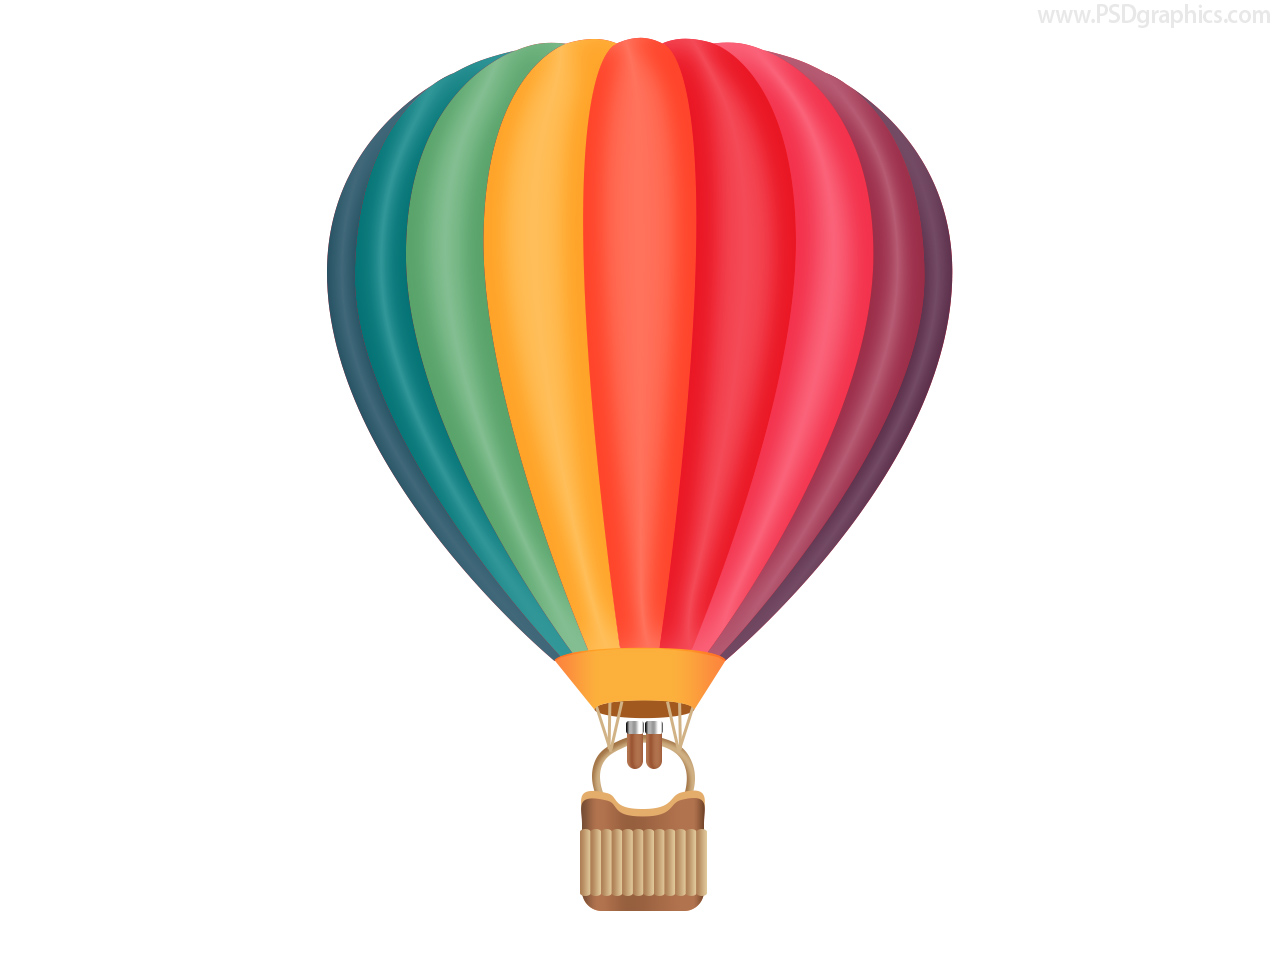 hot air balloon icon  psd  psdgraphics airplane graphics clip art airplane graphics free